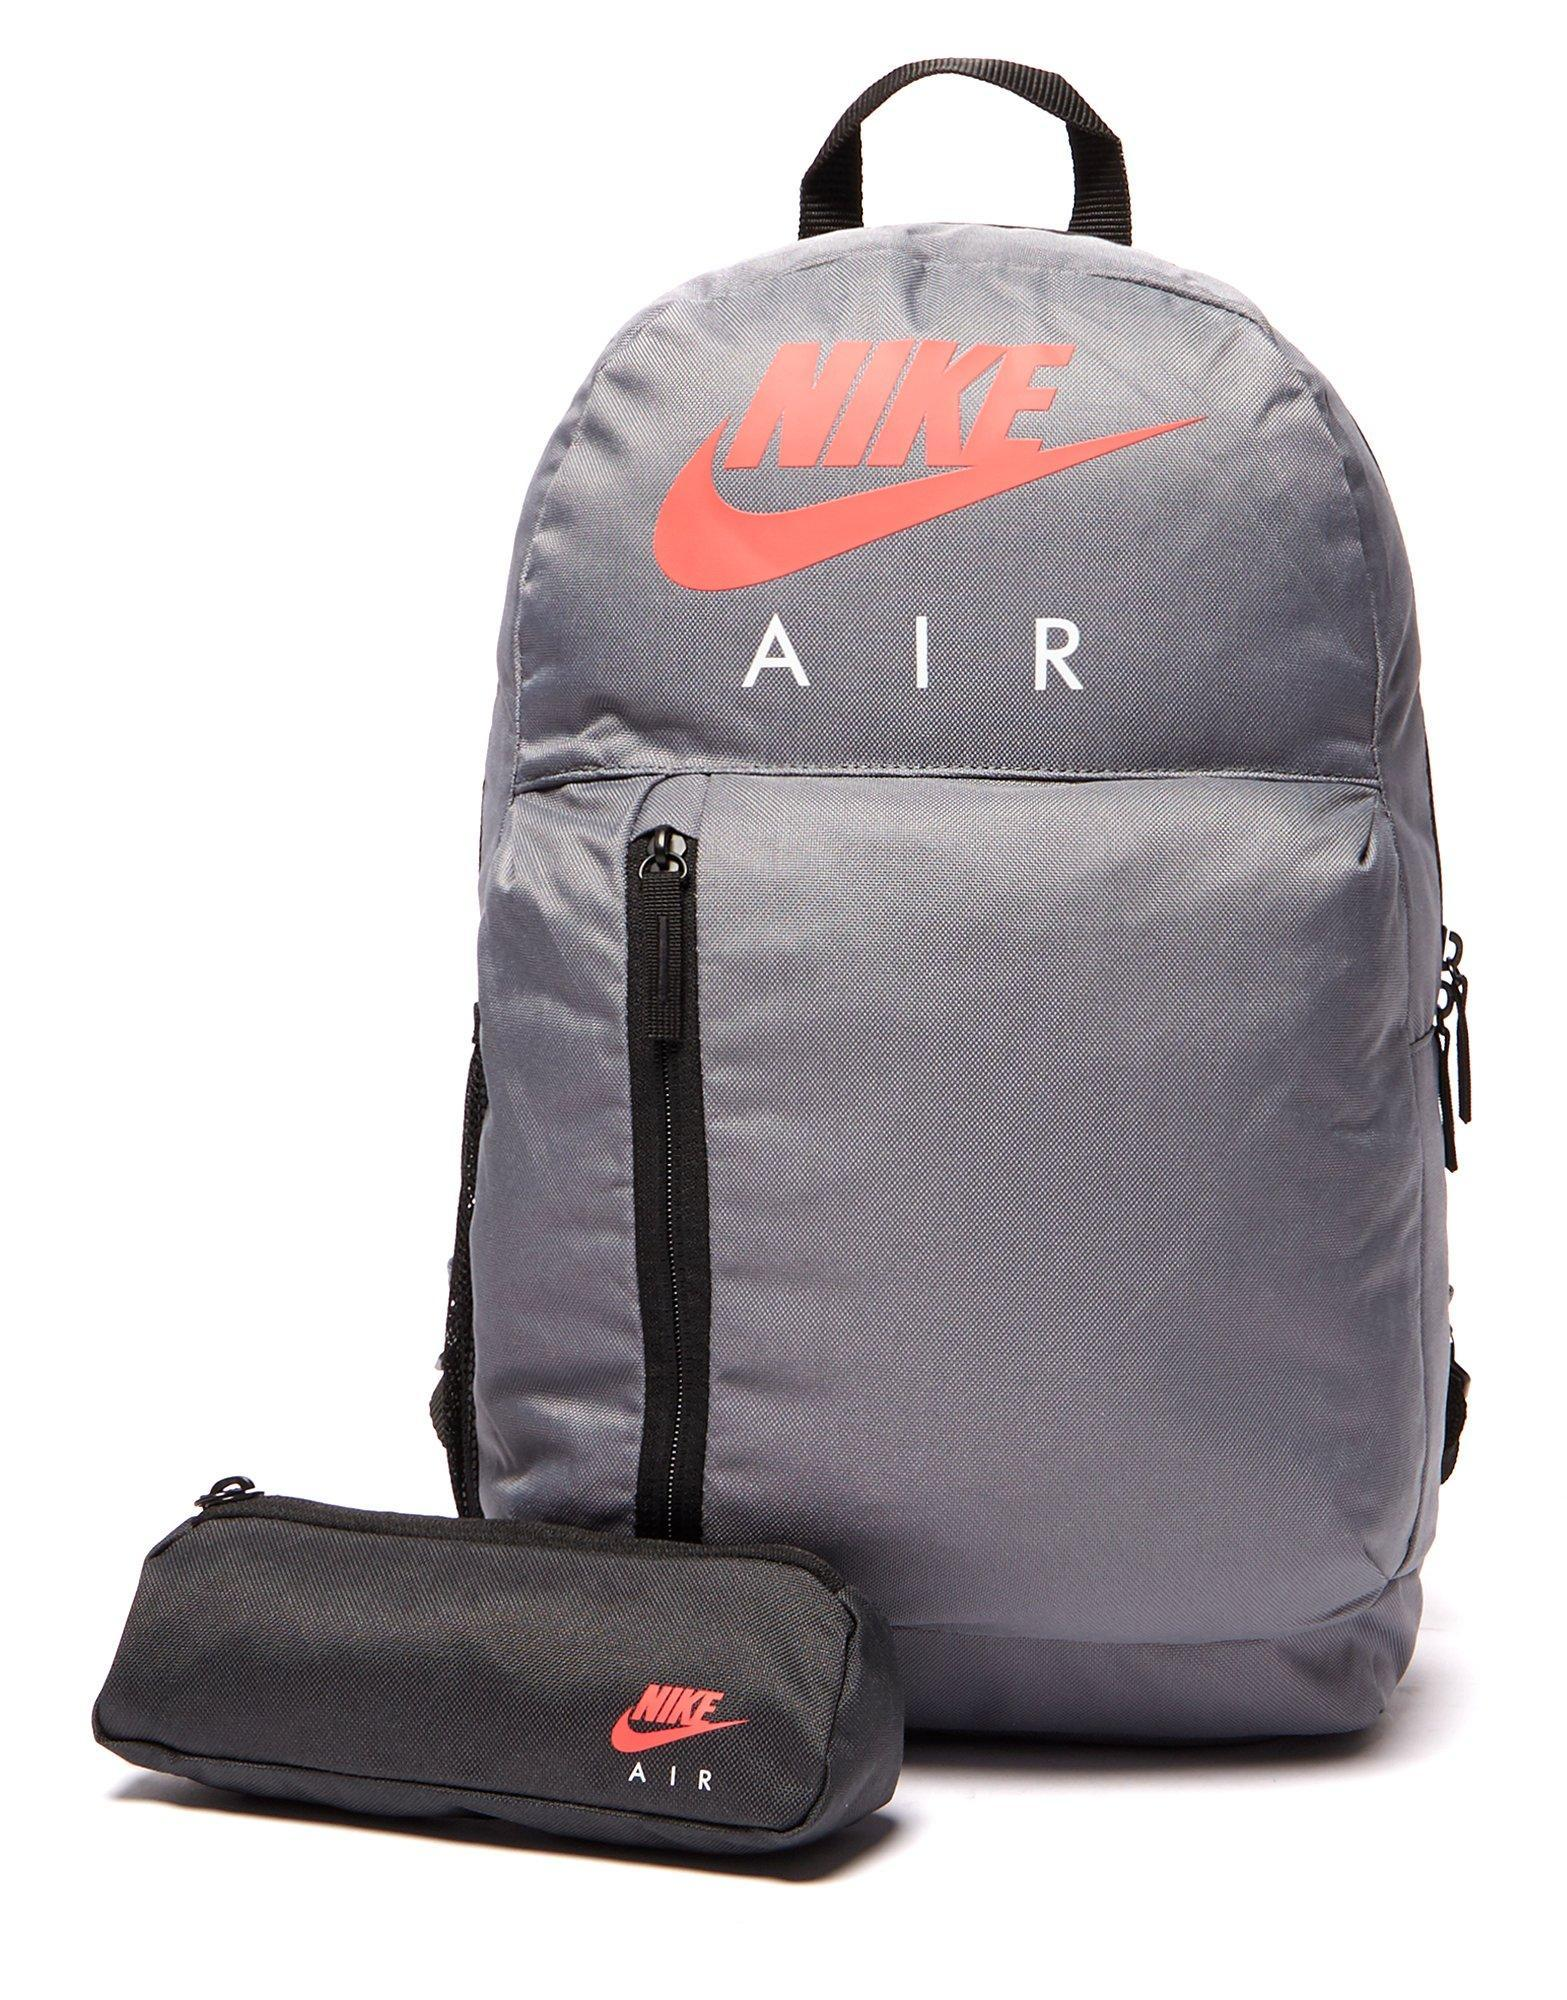 Nike Backpack With Shoes Case